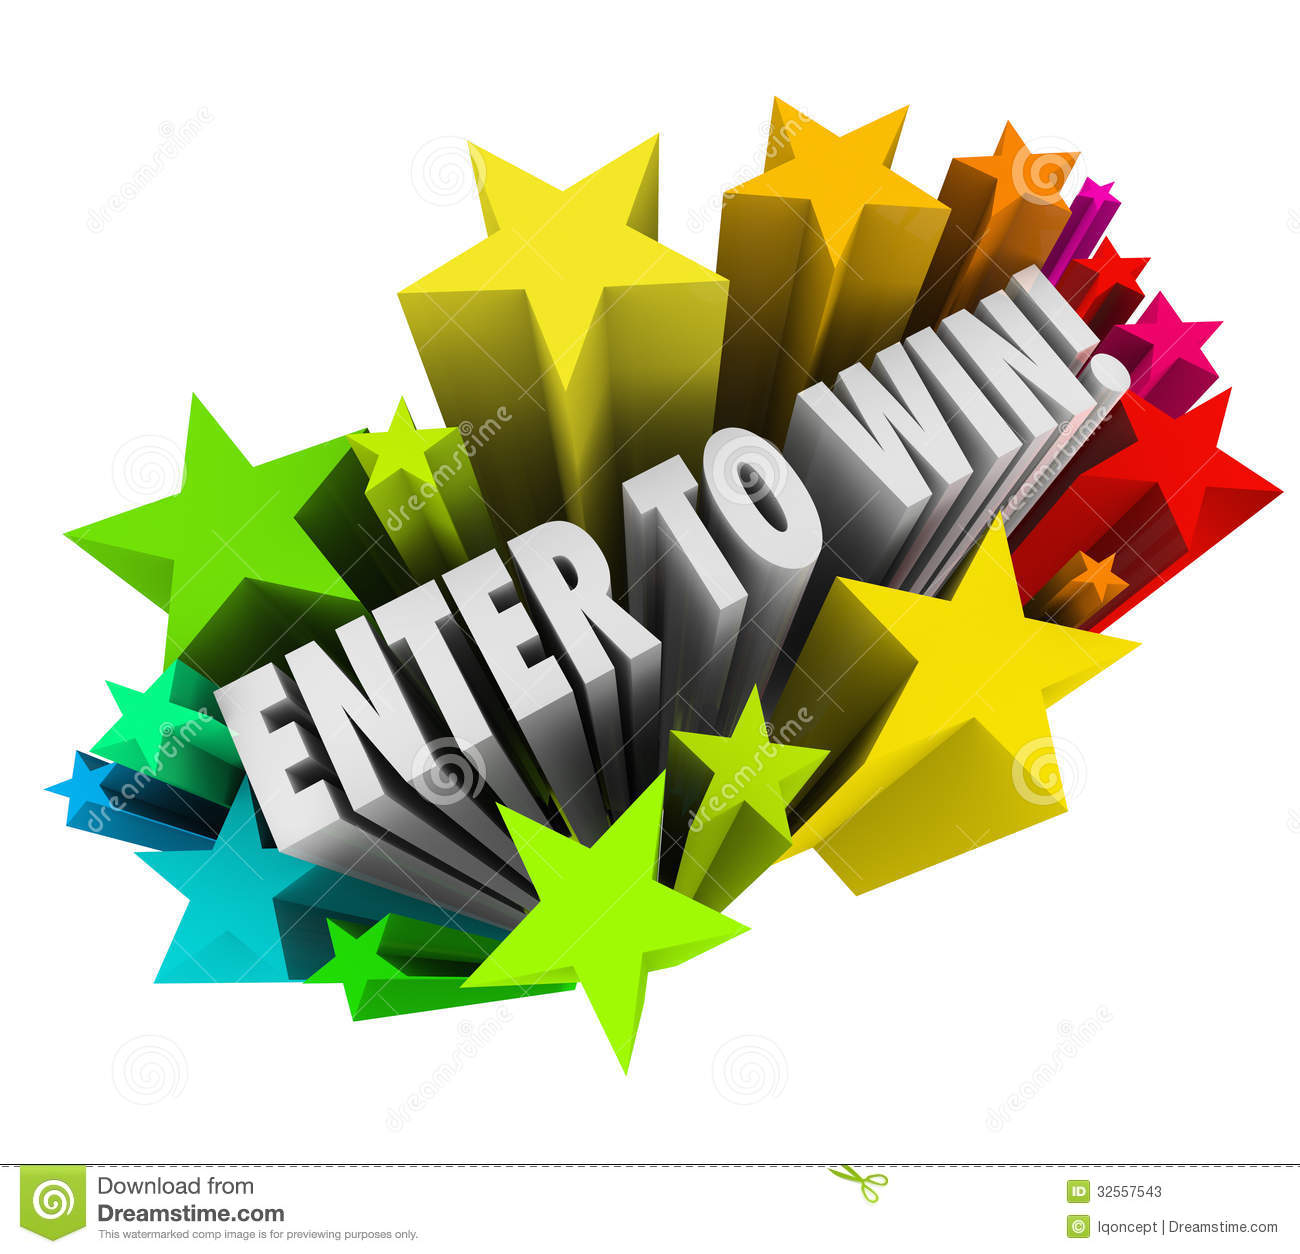 prizes sign clipart clipart kid enter to win clipart enter to win stars fireworks